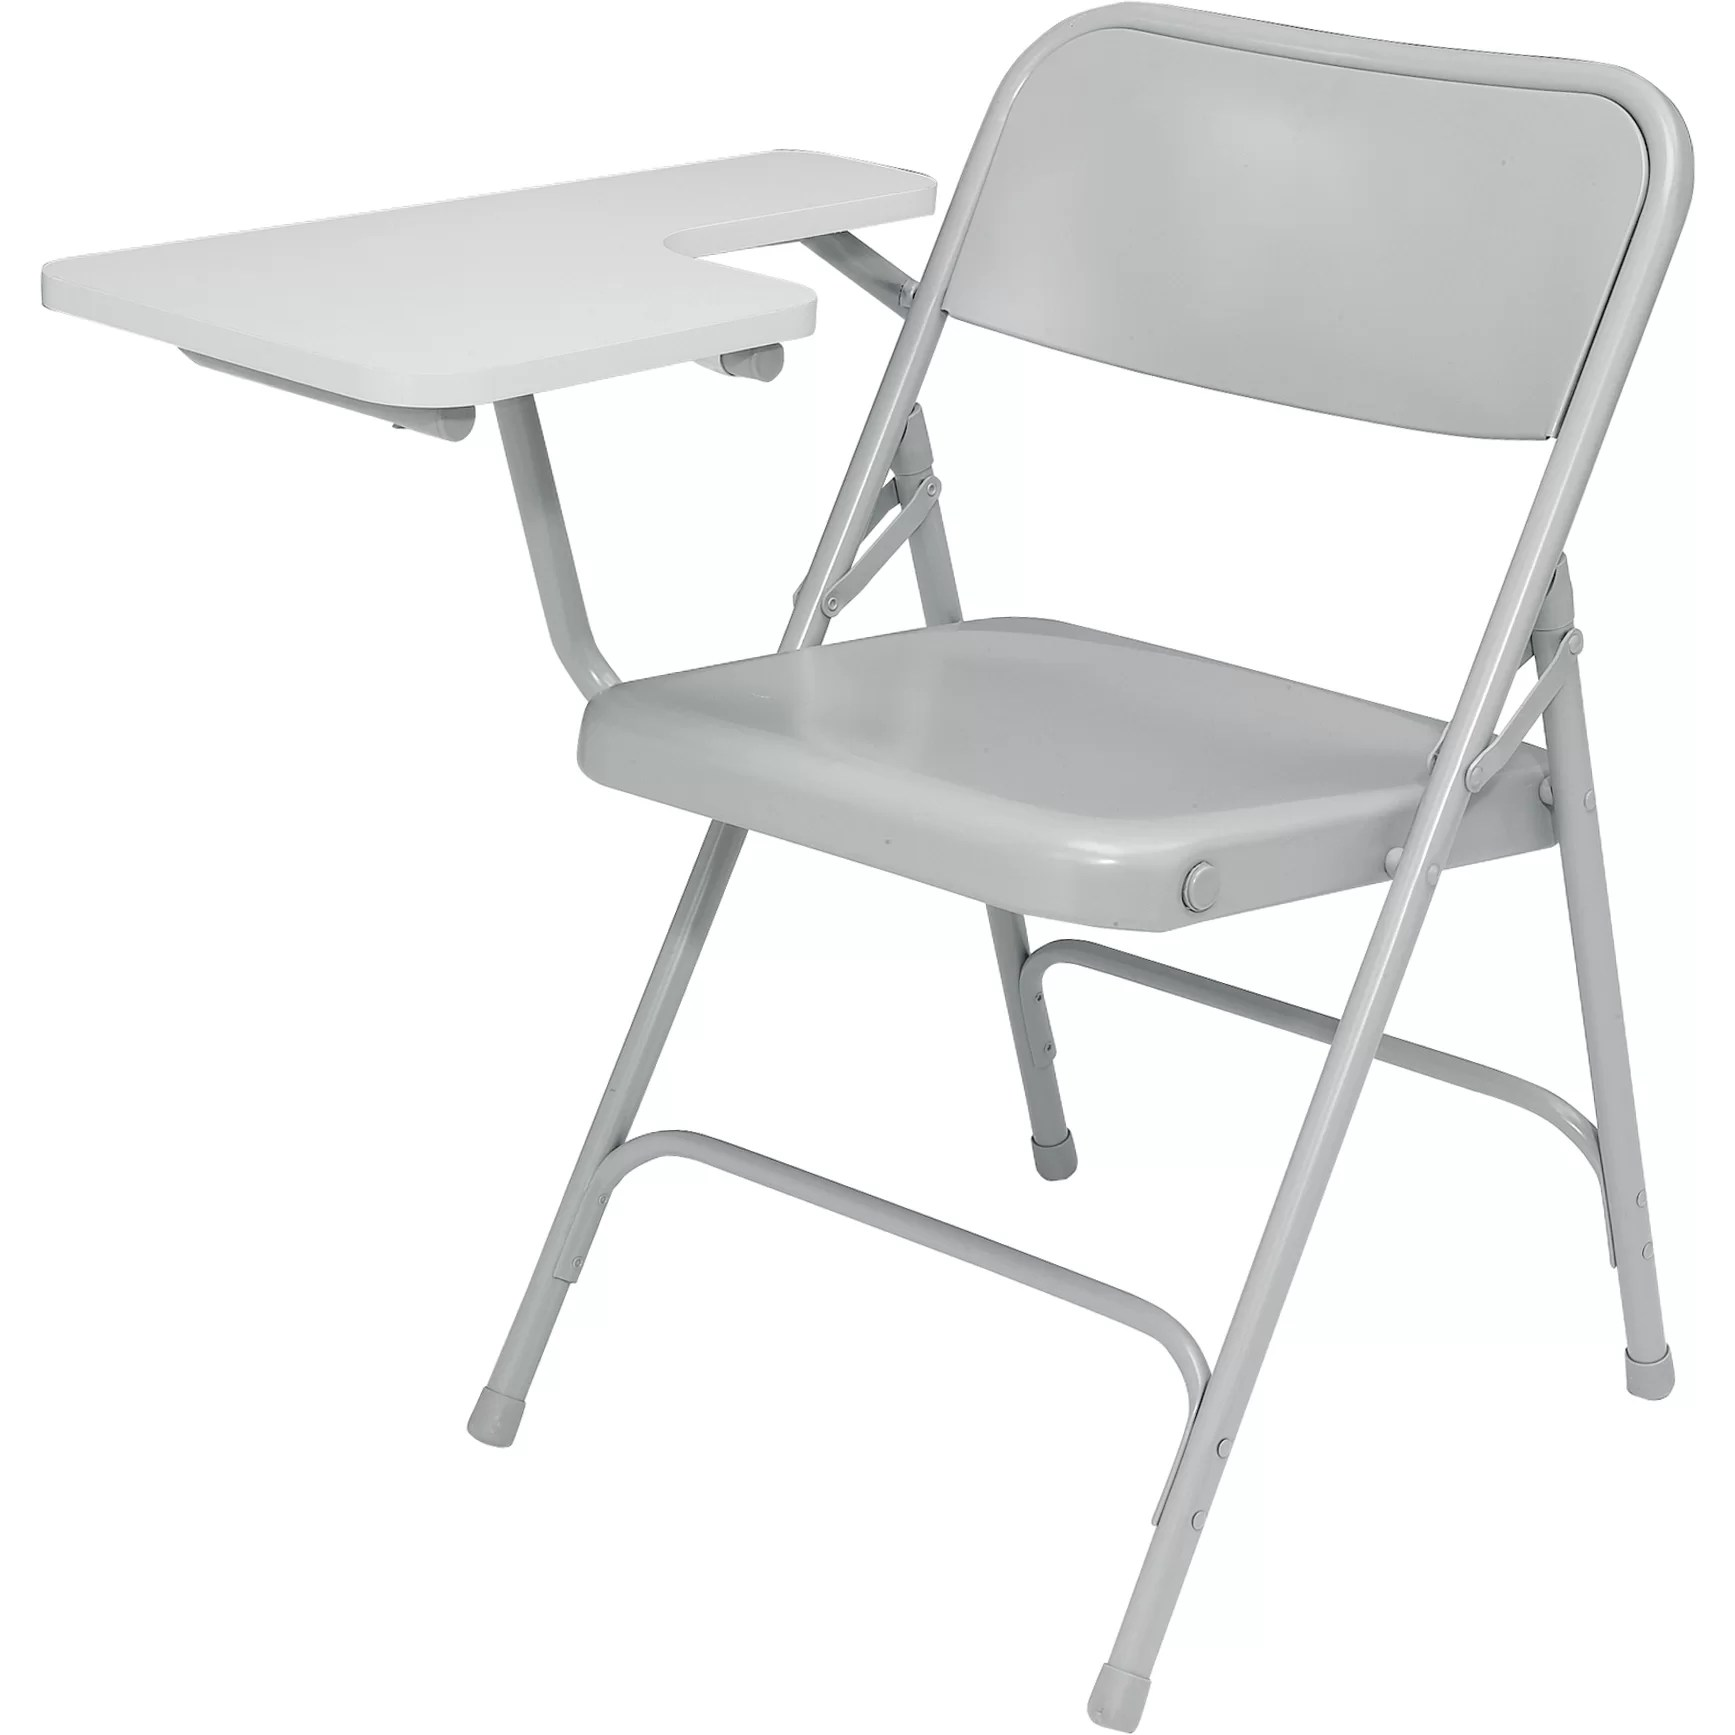 Steel Folding Chair National Public Seating 5200 Series Steel Folding Chair